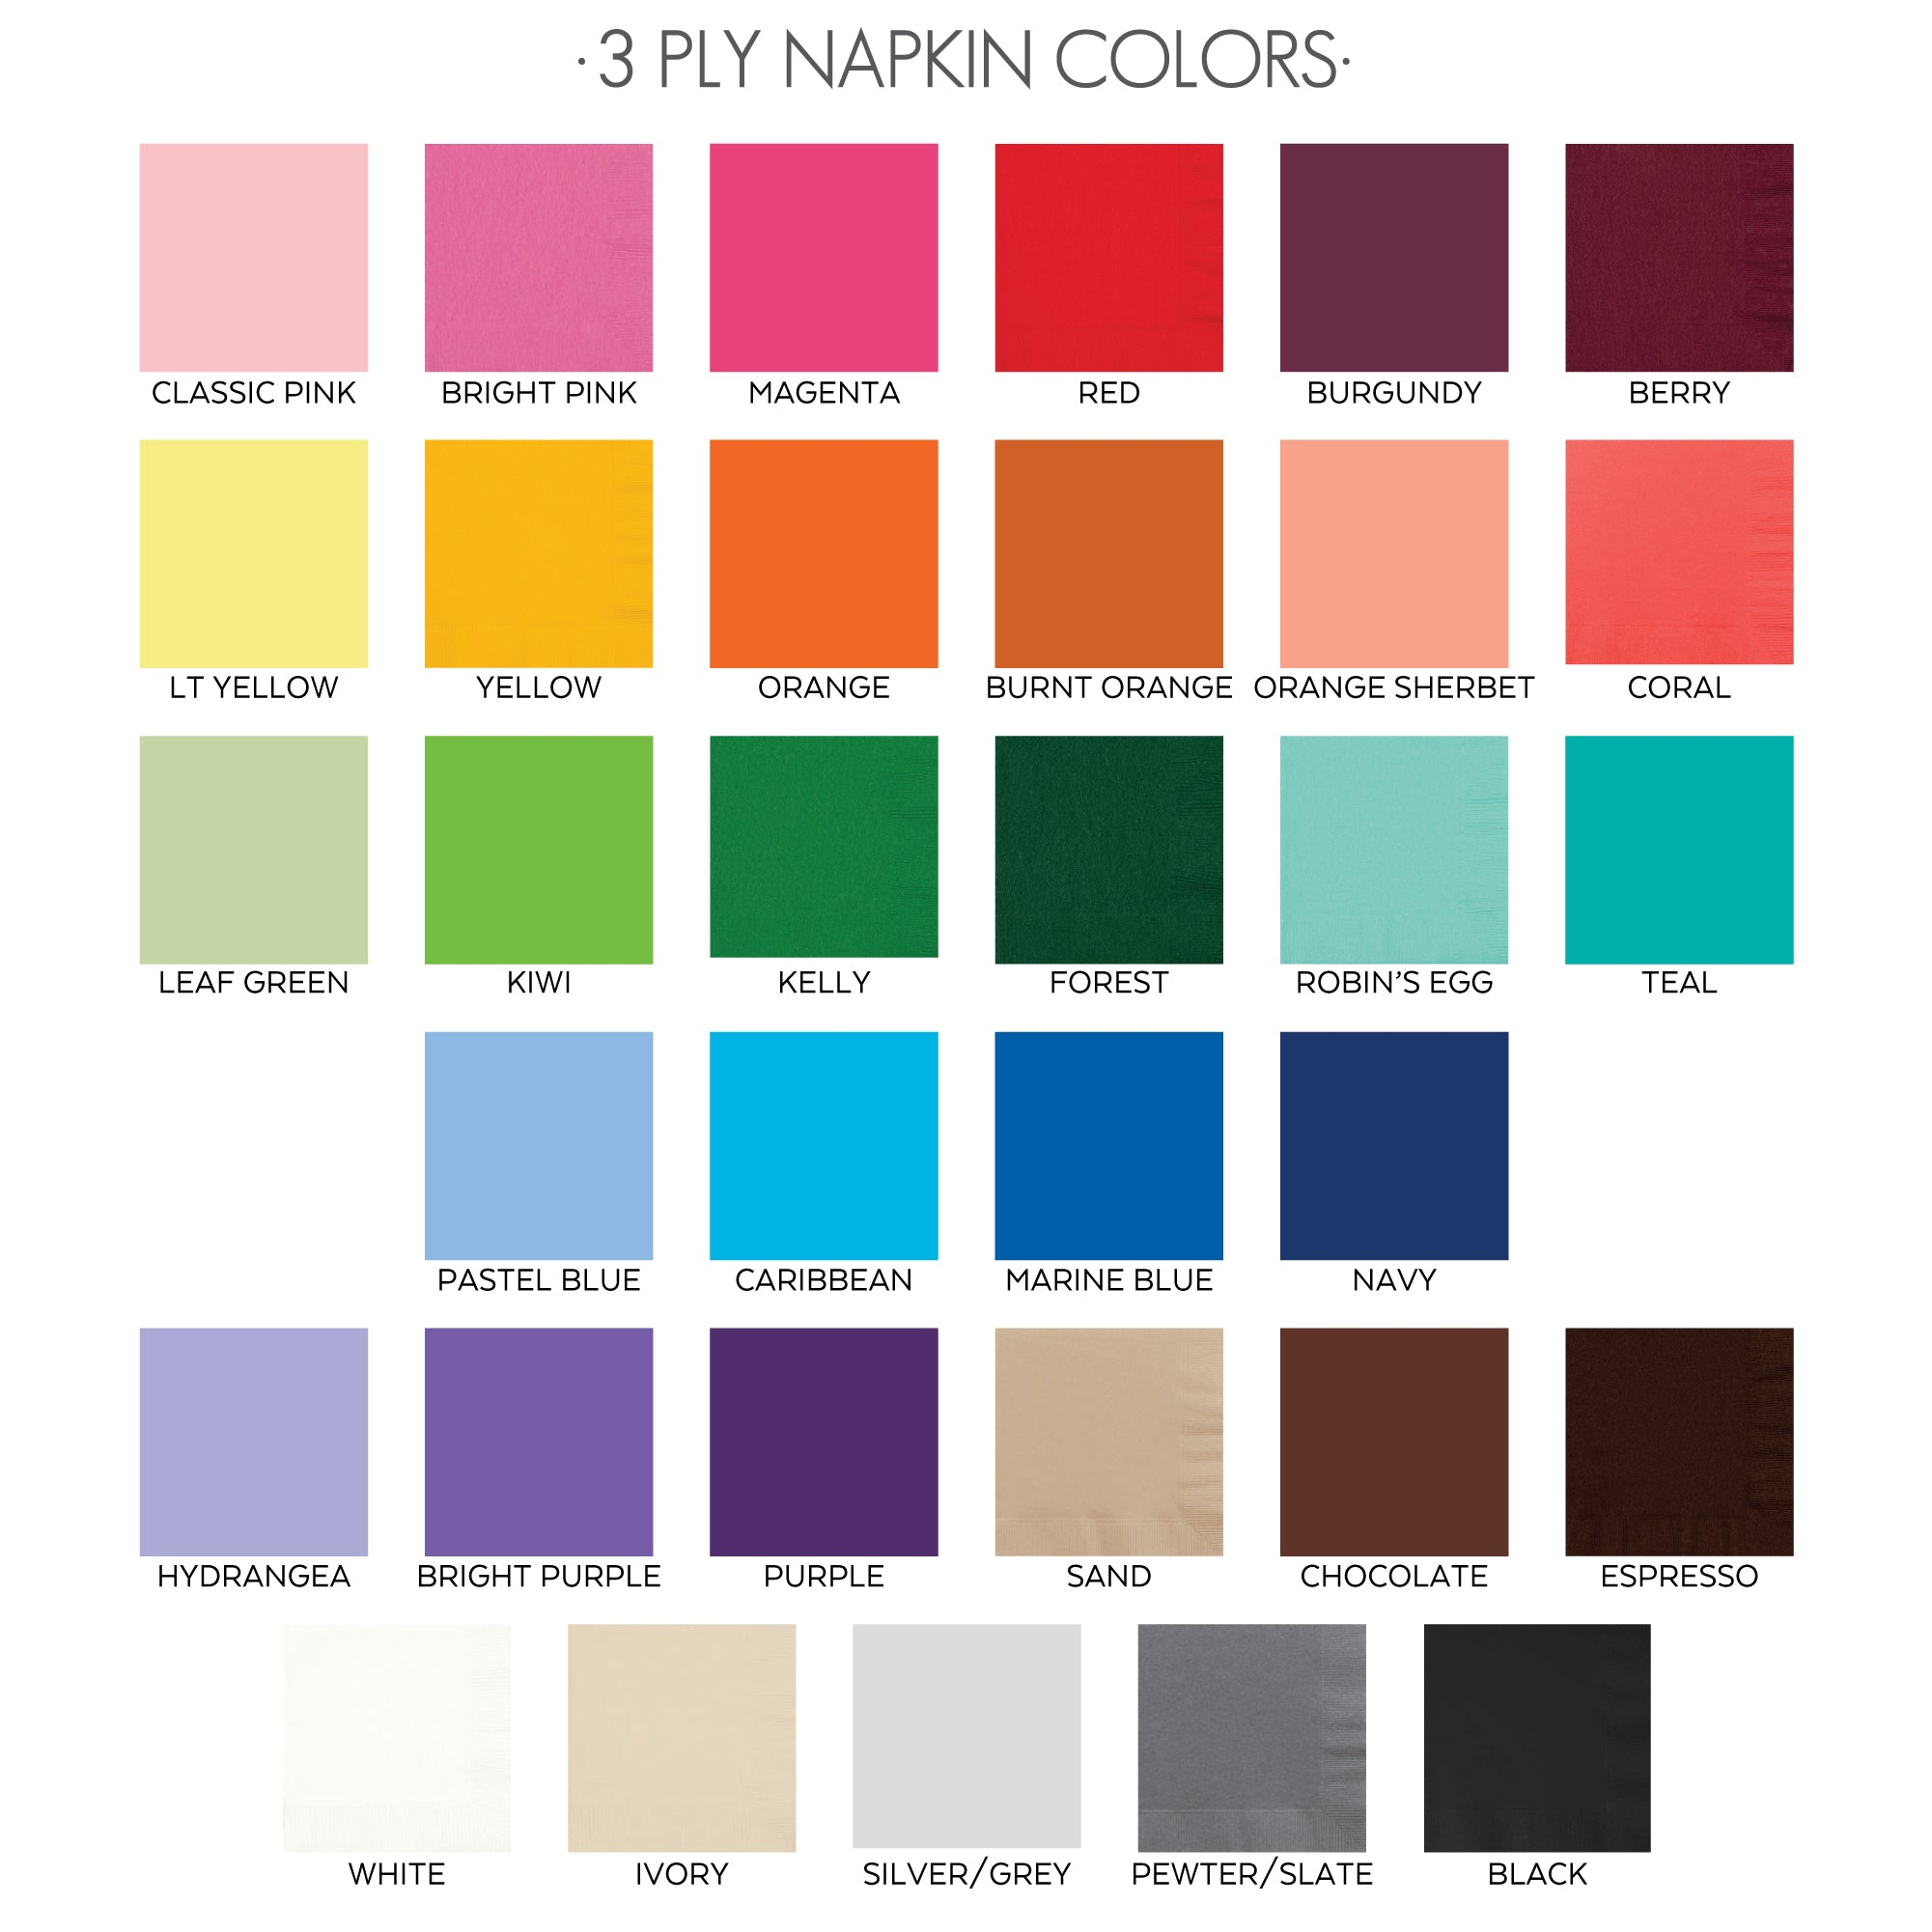 3ply Napkin colors